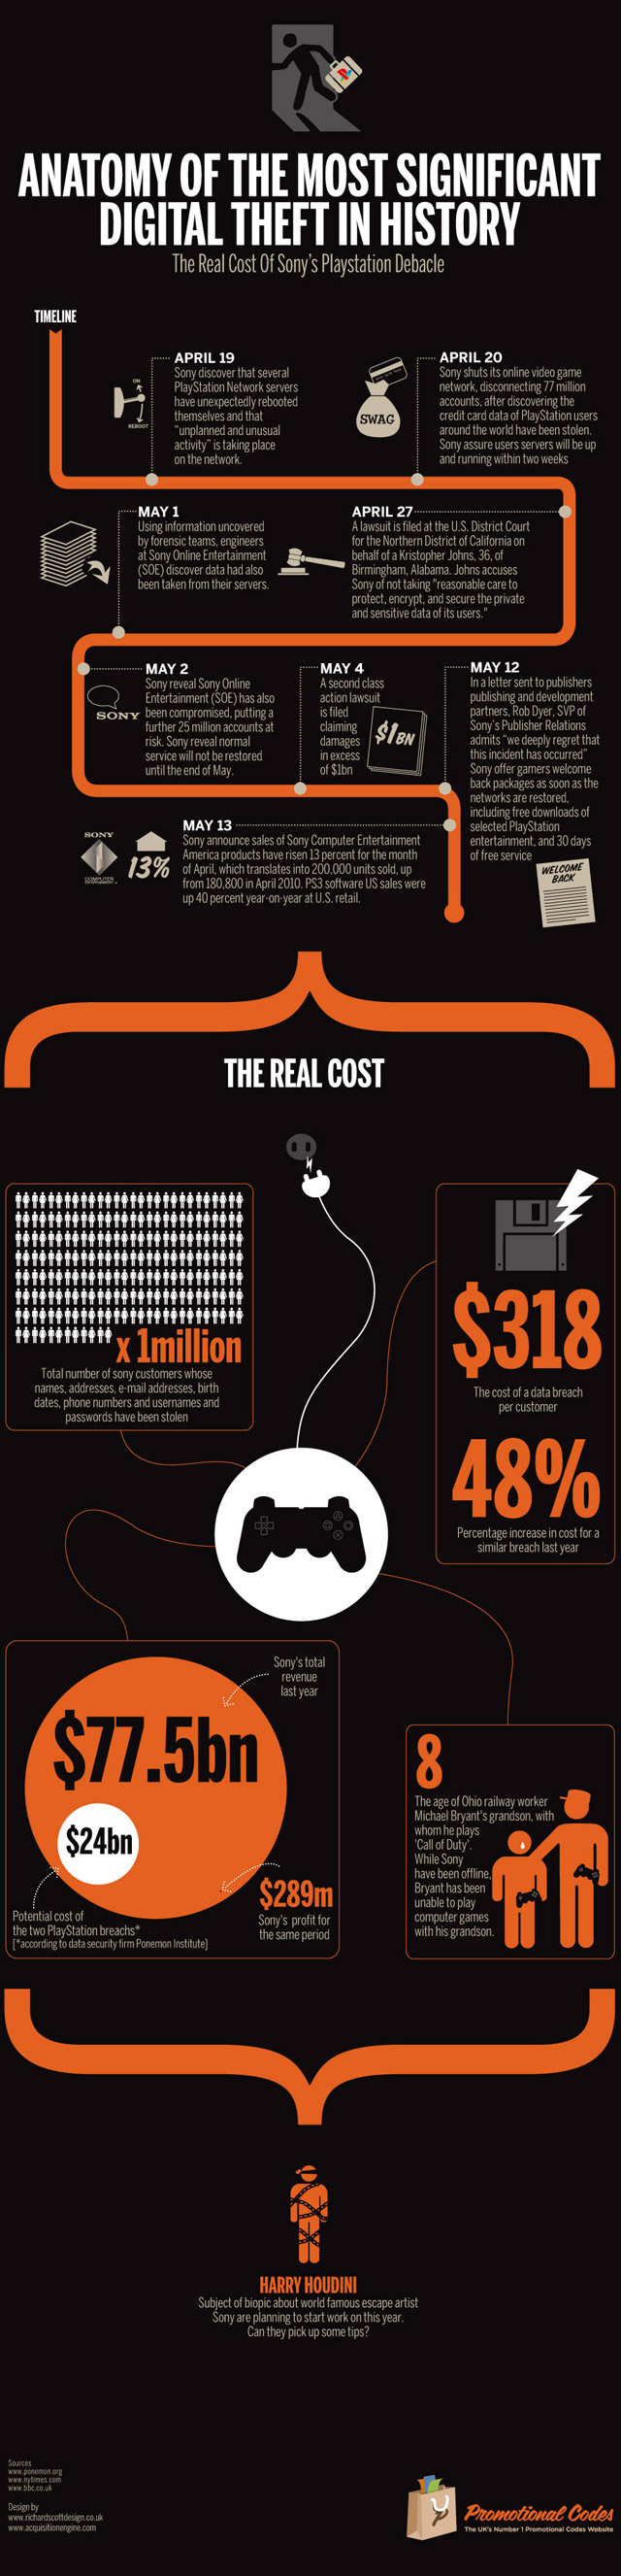 The Real Cost of the Sony Playstation Debacle